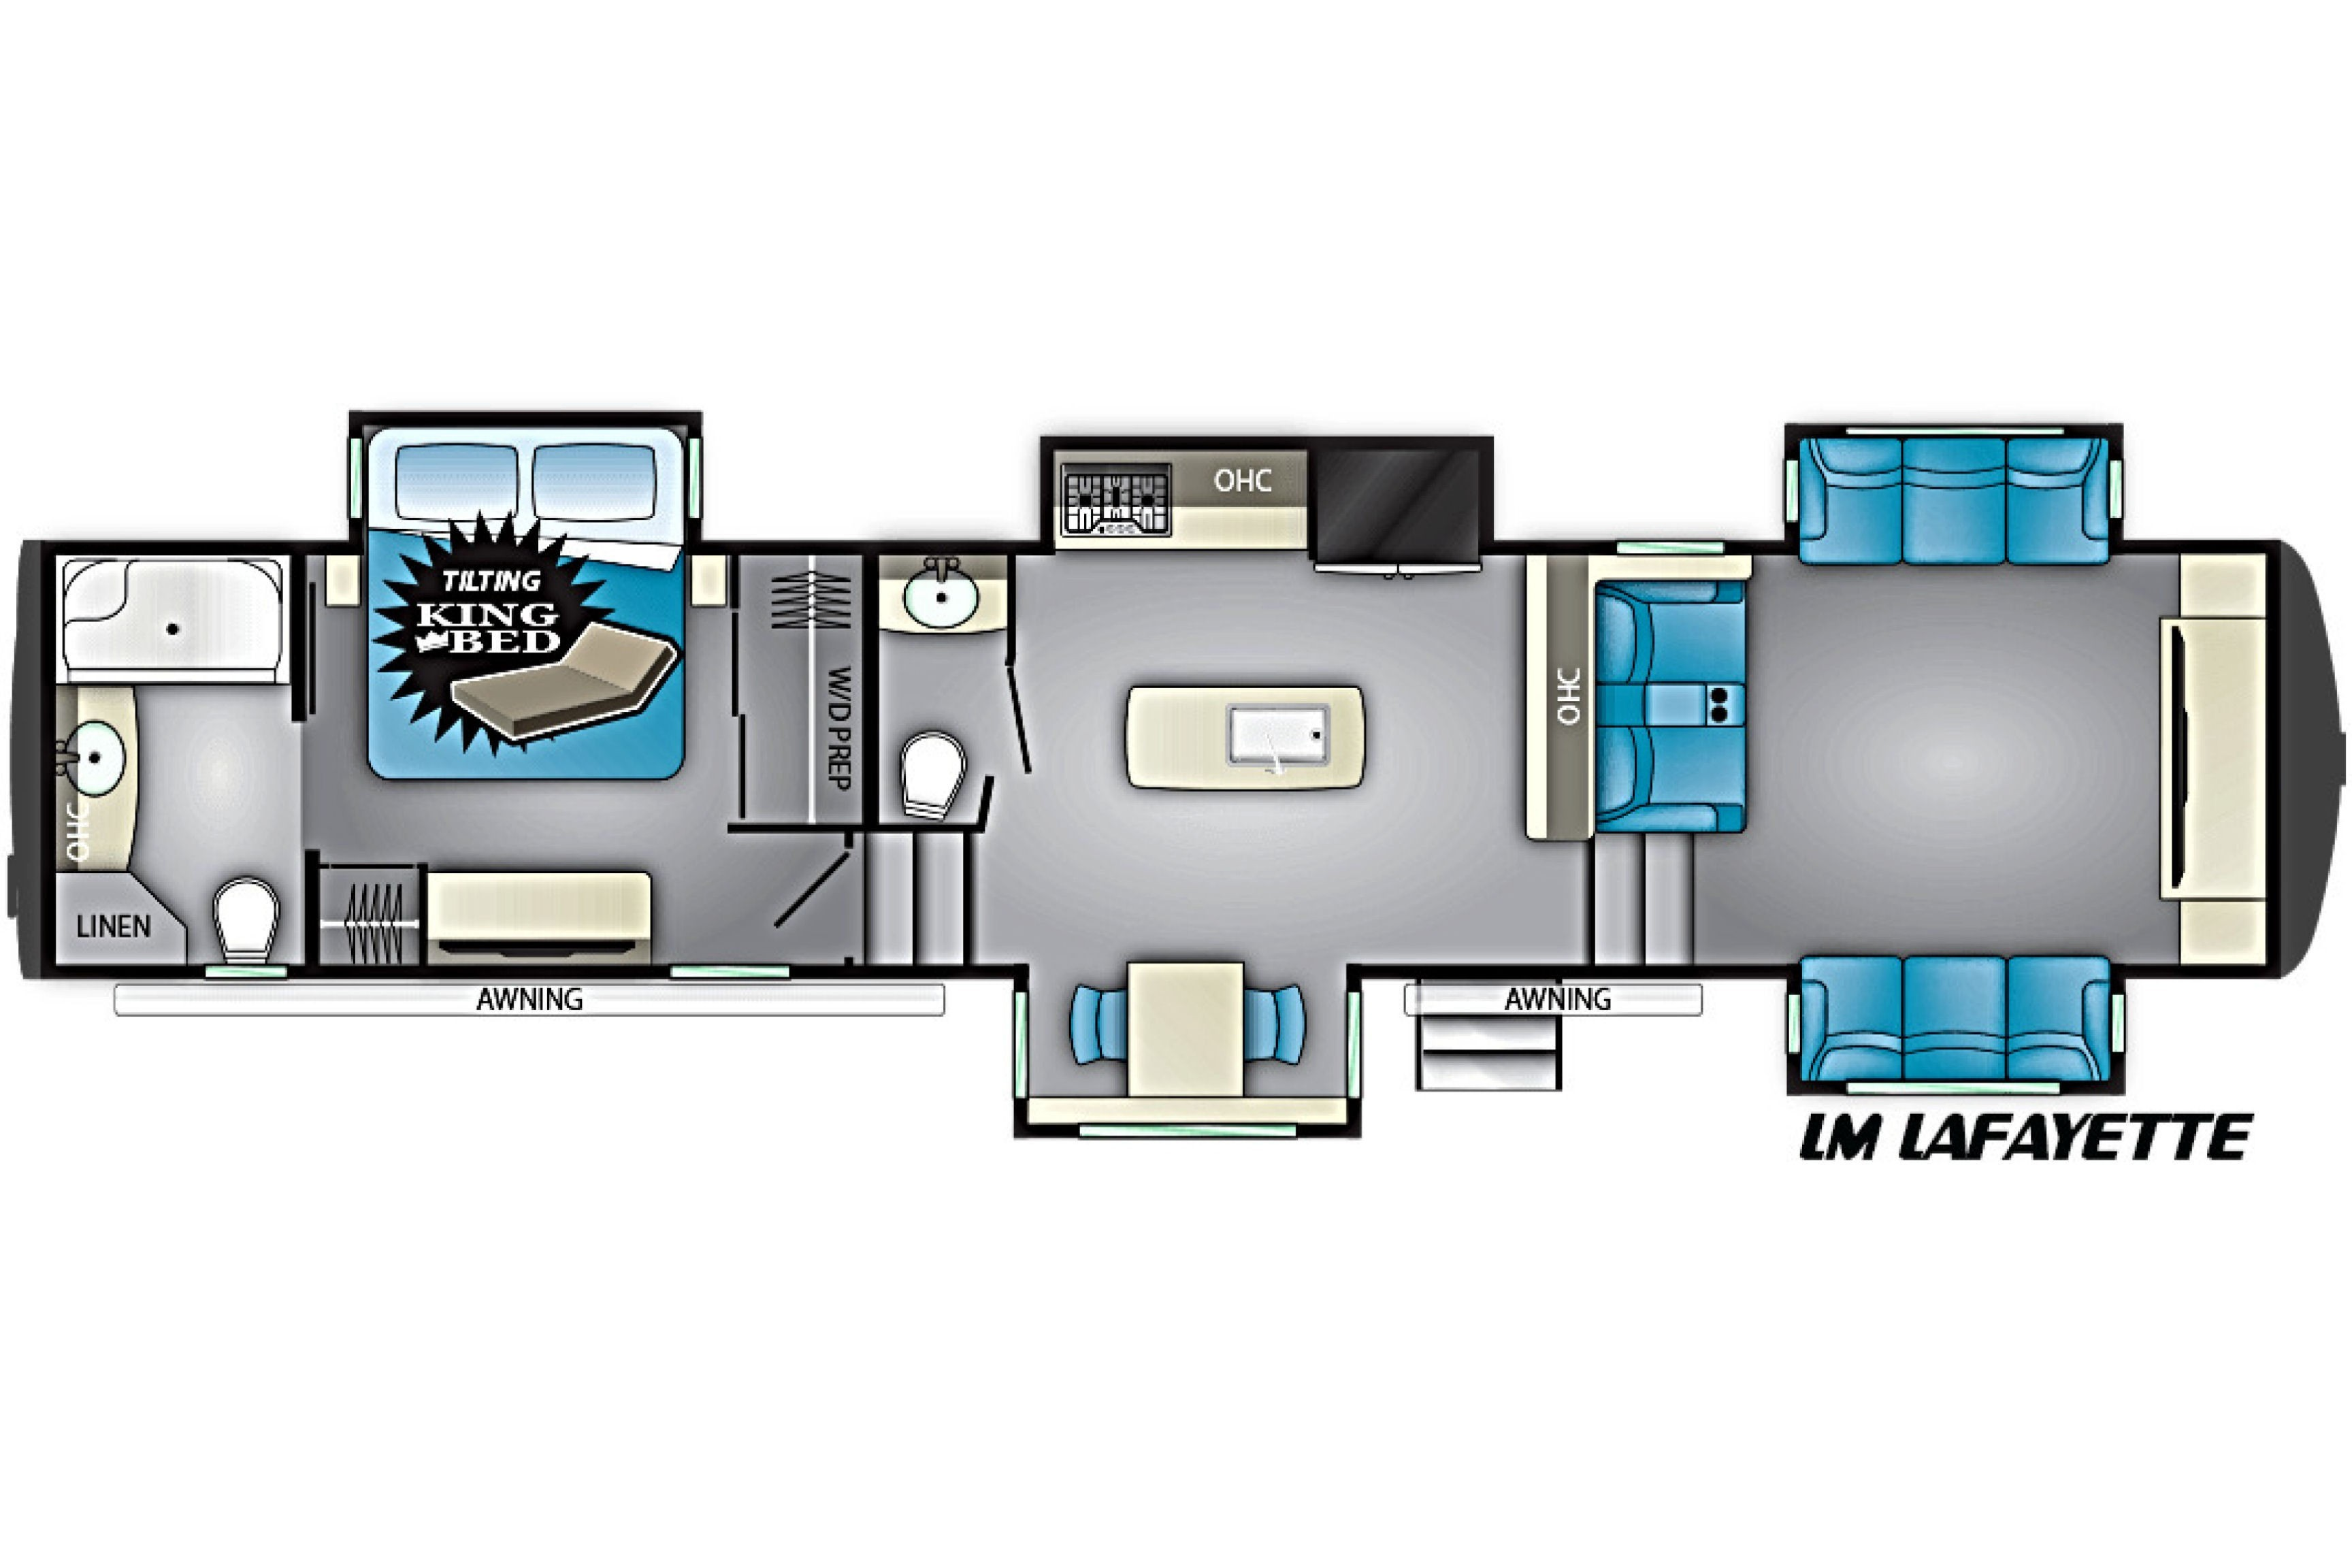 New 2019 Heartland Landmark 365 Lafayette Fifth Wheel Rv In Wiring Diagrams Click Here For Larger Image